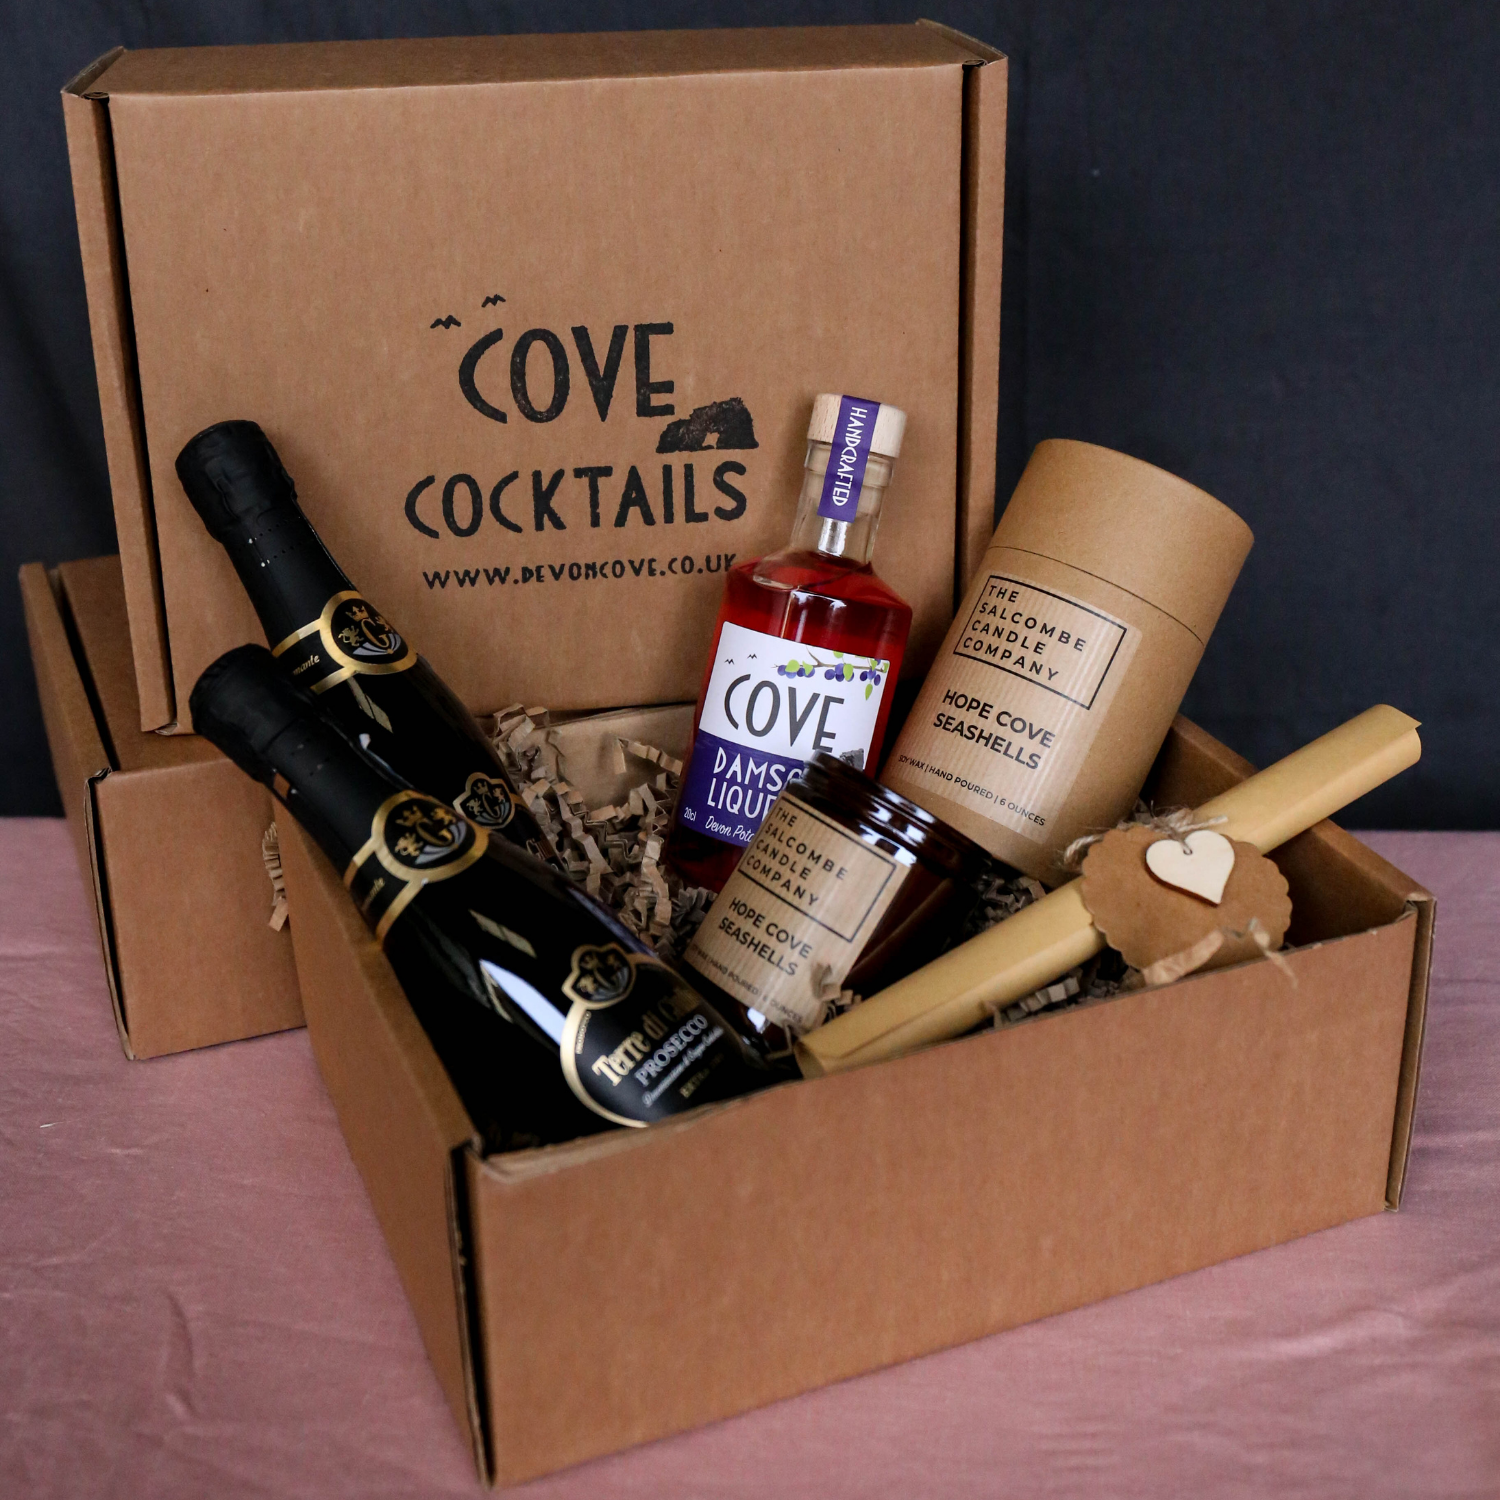 Hope cove candle and prosecco cocktail kit